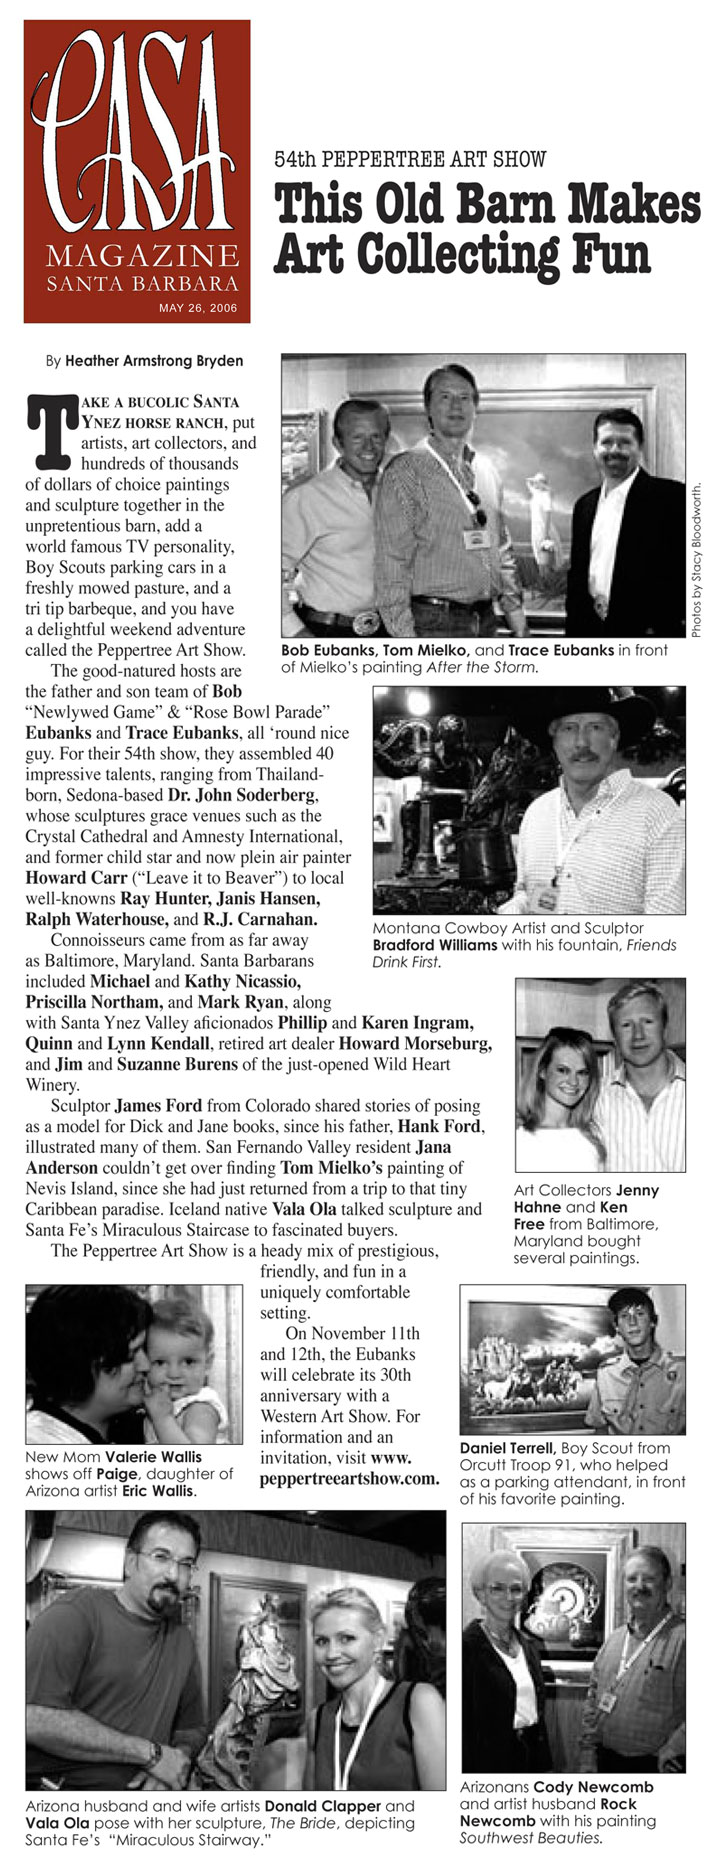 Casa Magazine - Peppertree Art Show